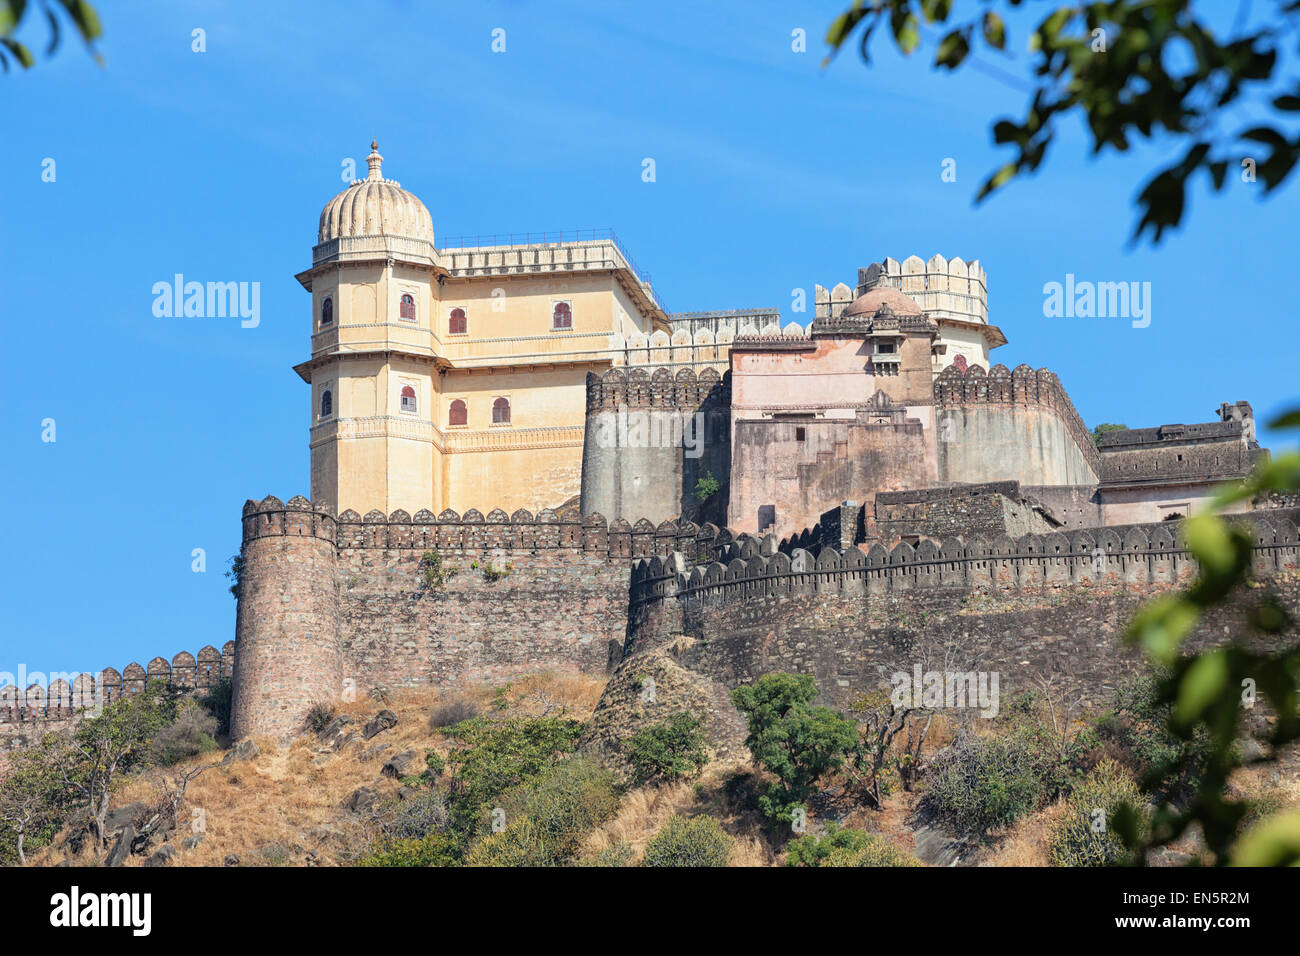 Inspiring view of the imposing facade of Kumbhalgarh Fortress, a 15th century redoubt and a world heritage site - Stock Image